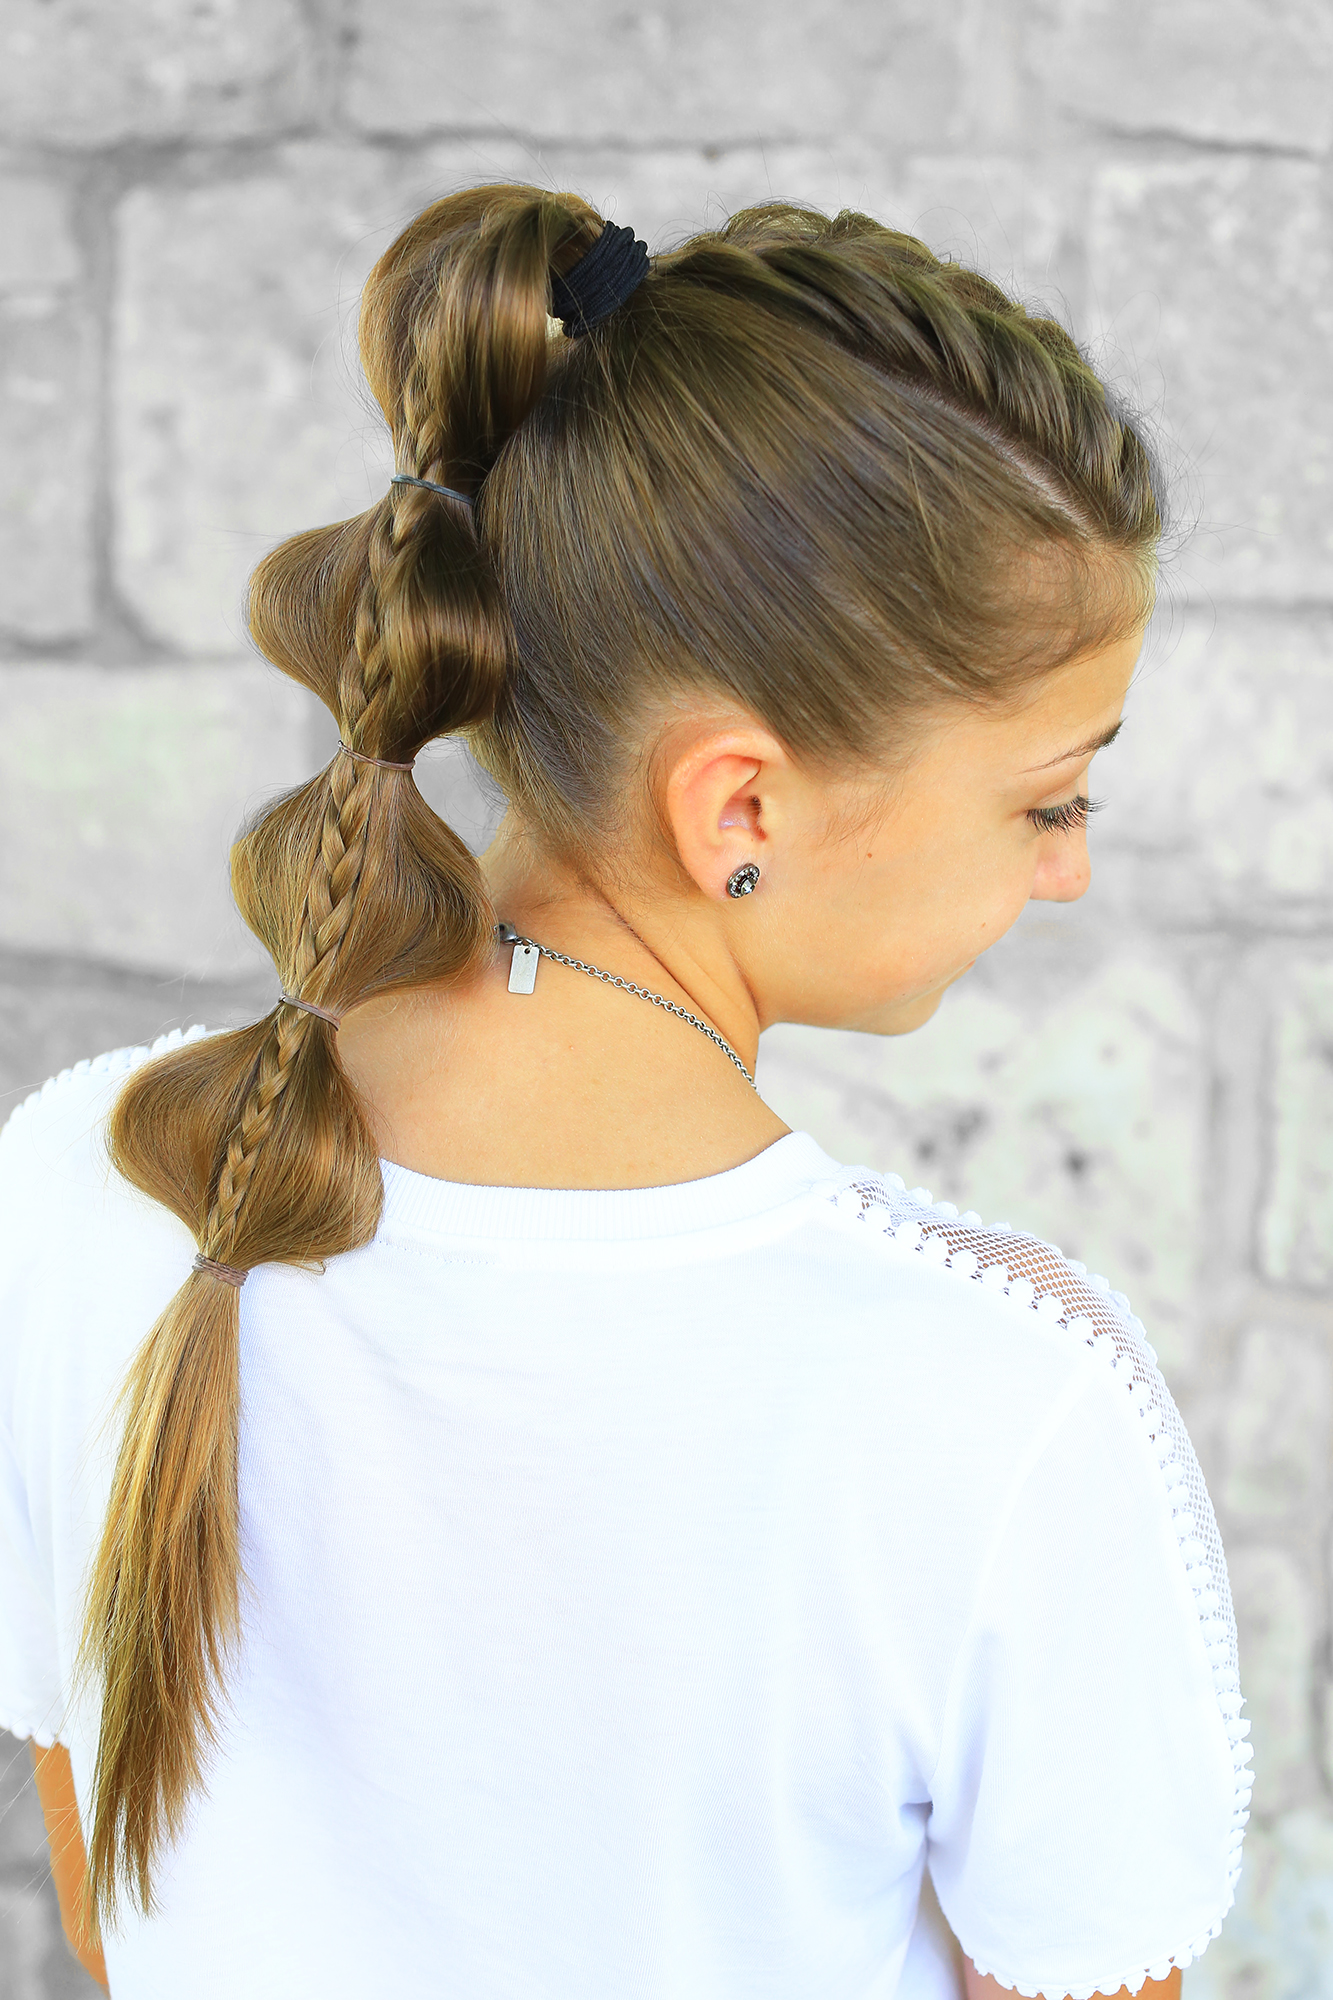 bubble hairstyles braid cute stacked hair cutegirlshairstyles hairdos visit young cgh saved